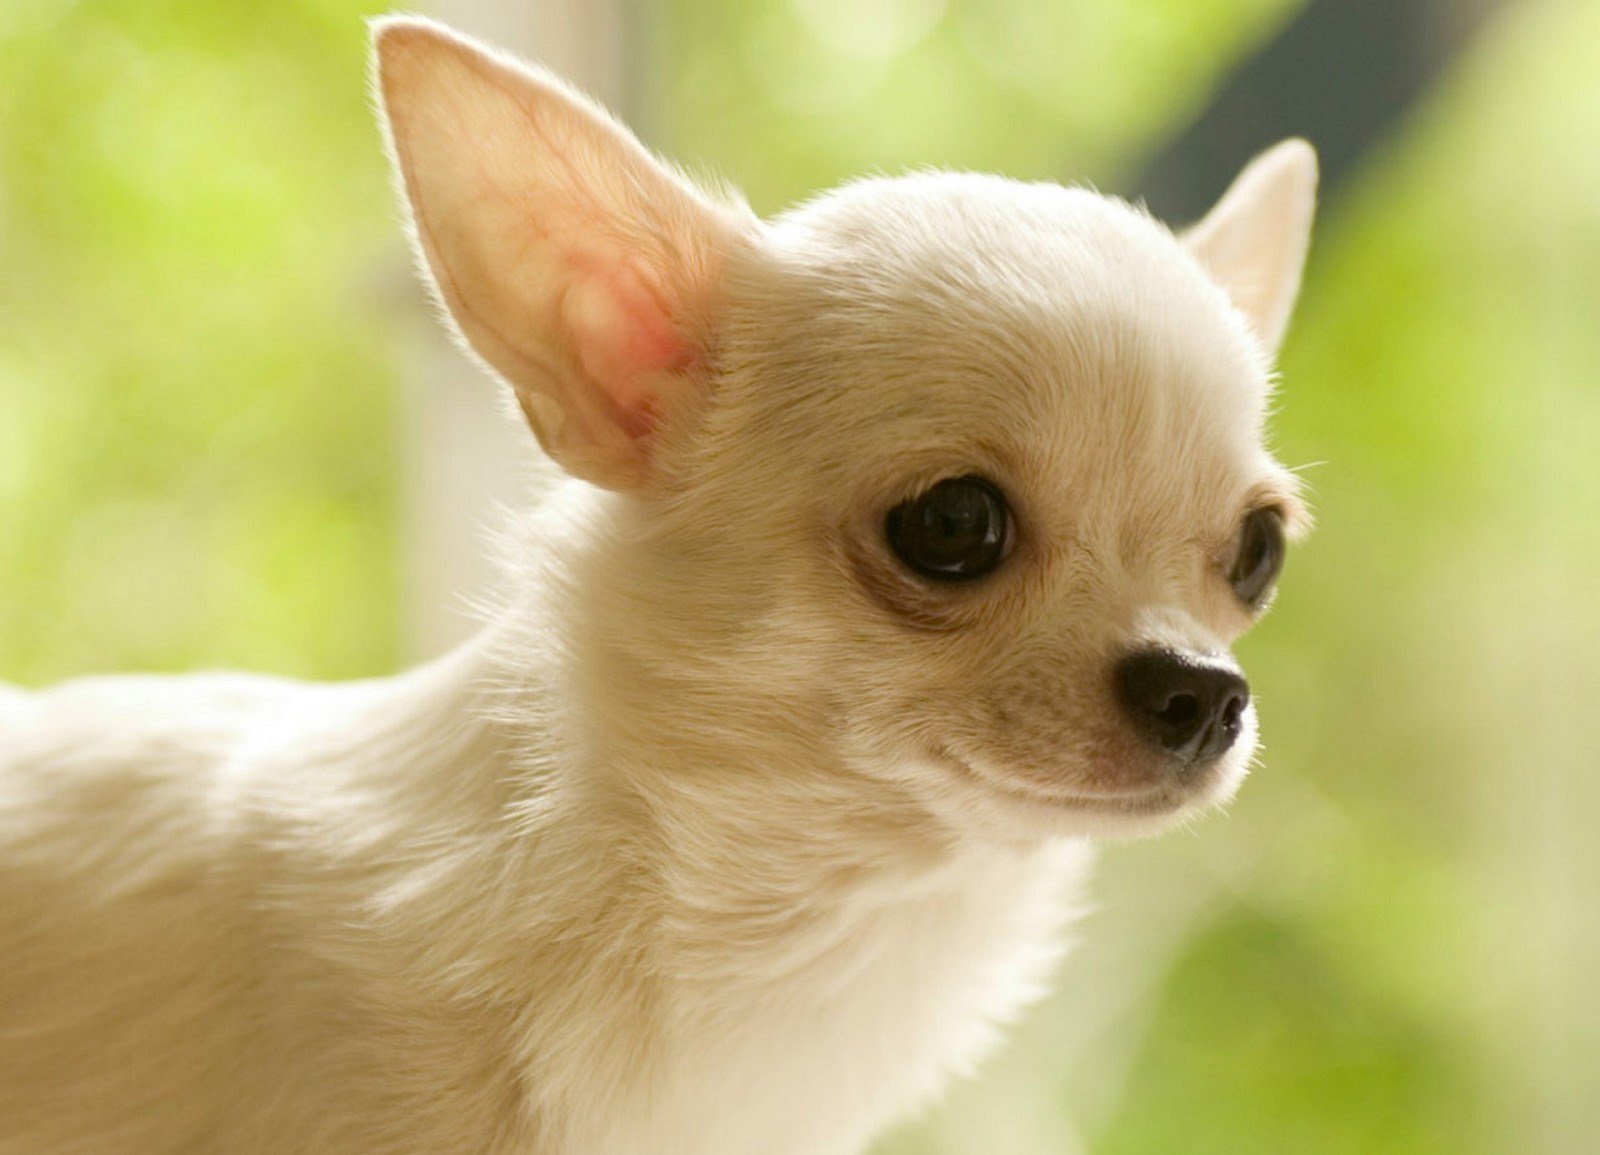 Chihuahua dog wallpaper